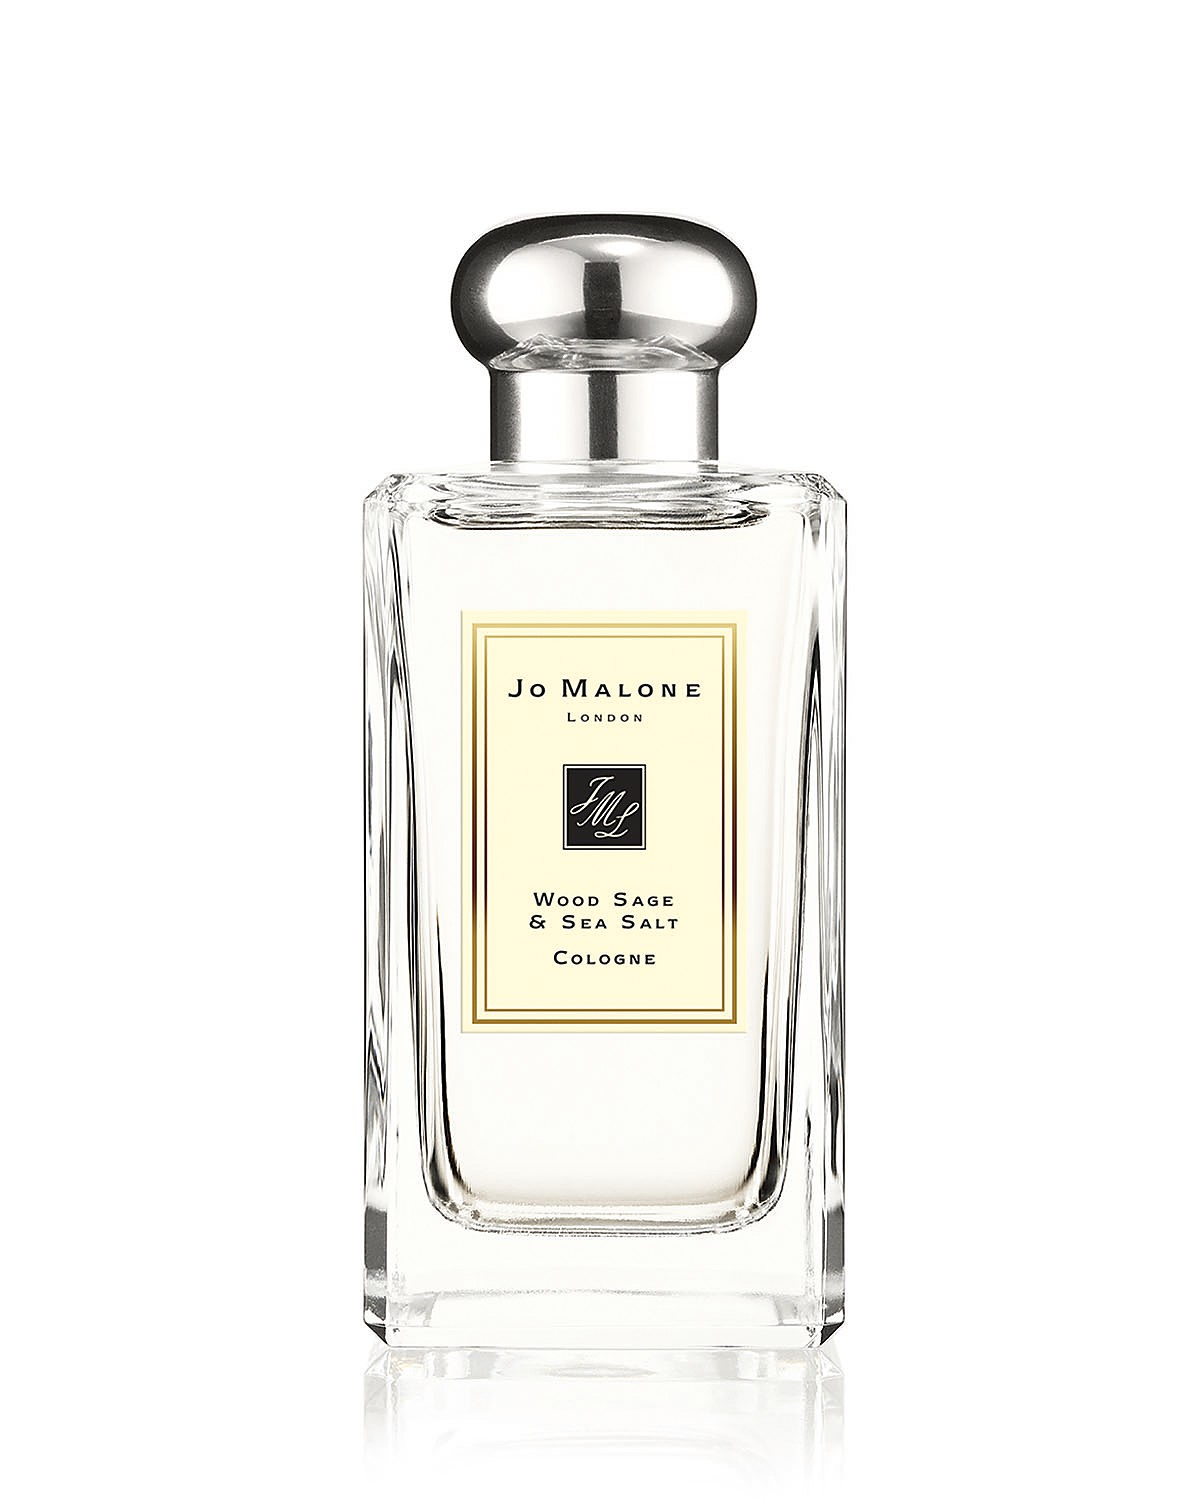 Одеколон Jo Malone Wood Sage & Sea Salt 100ml фото